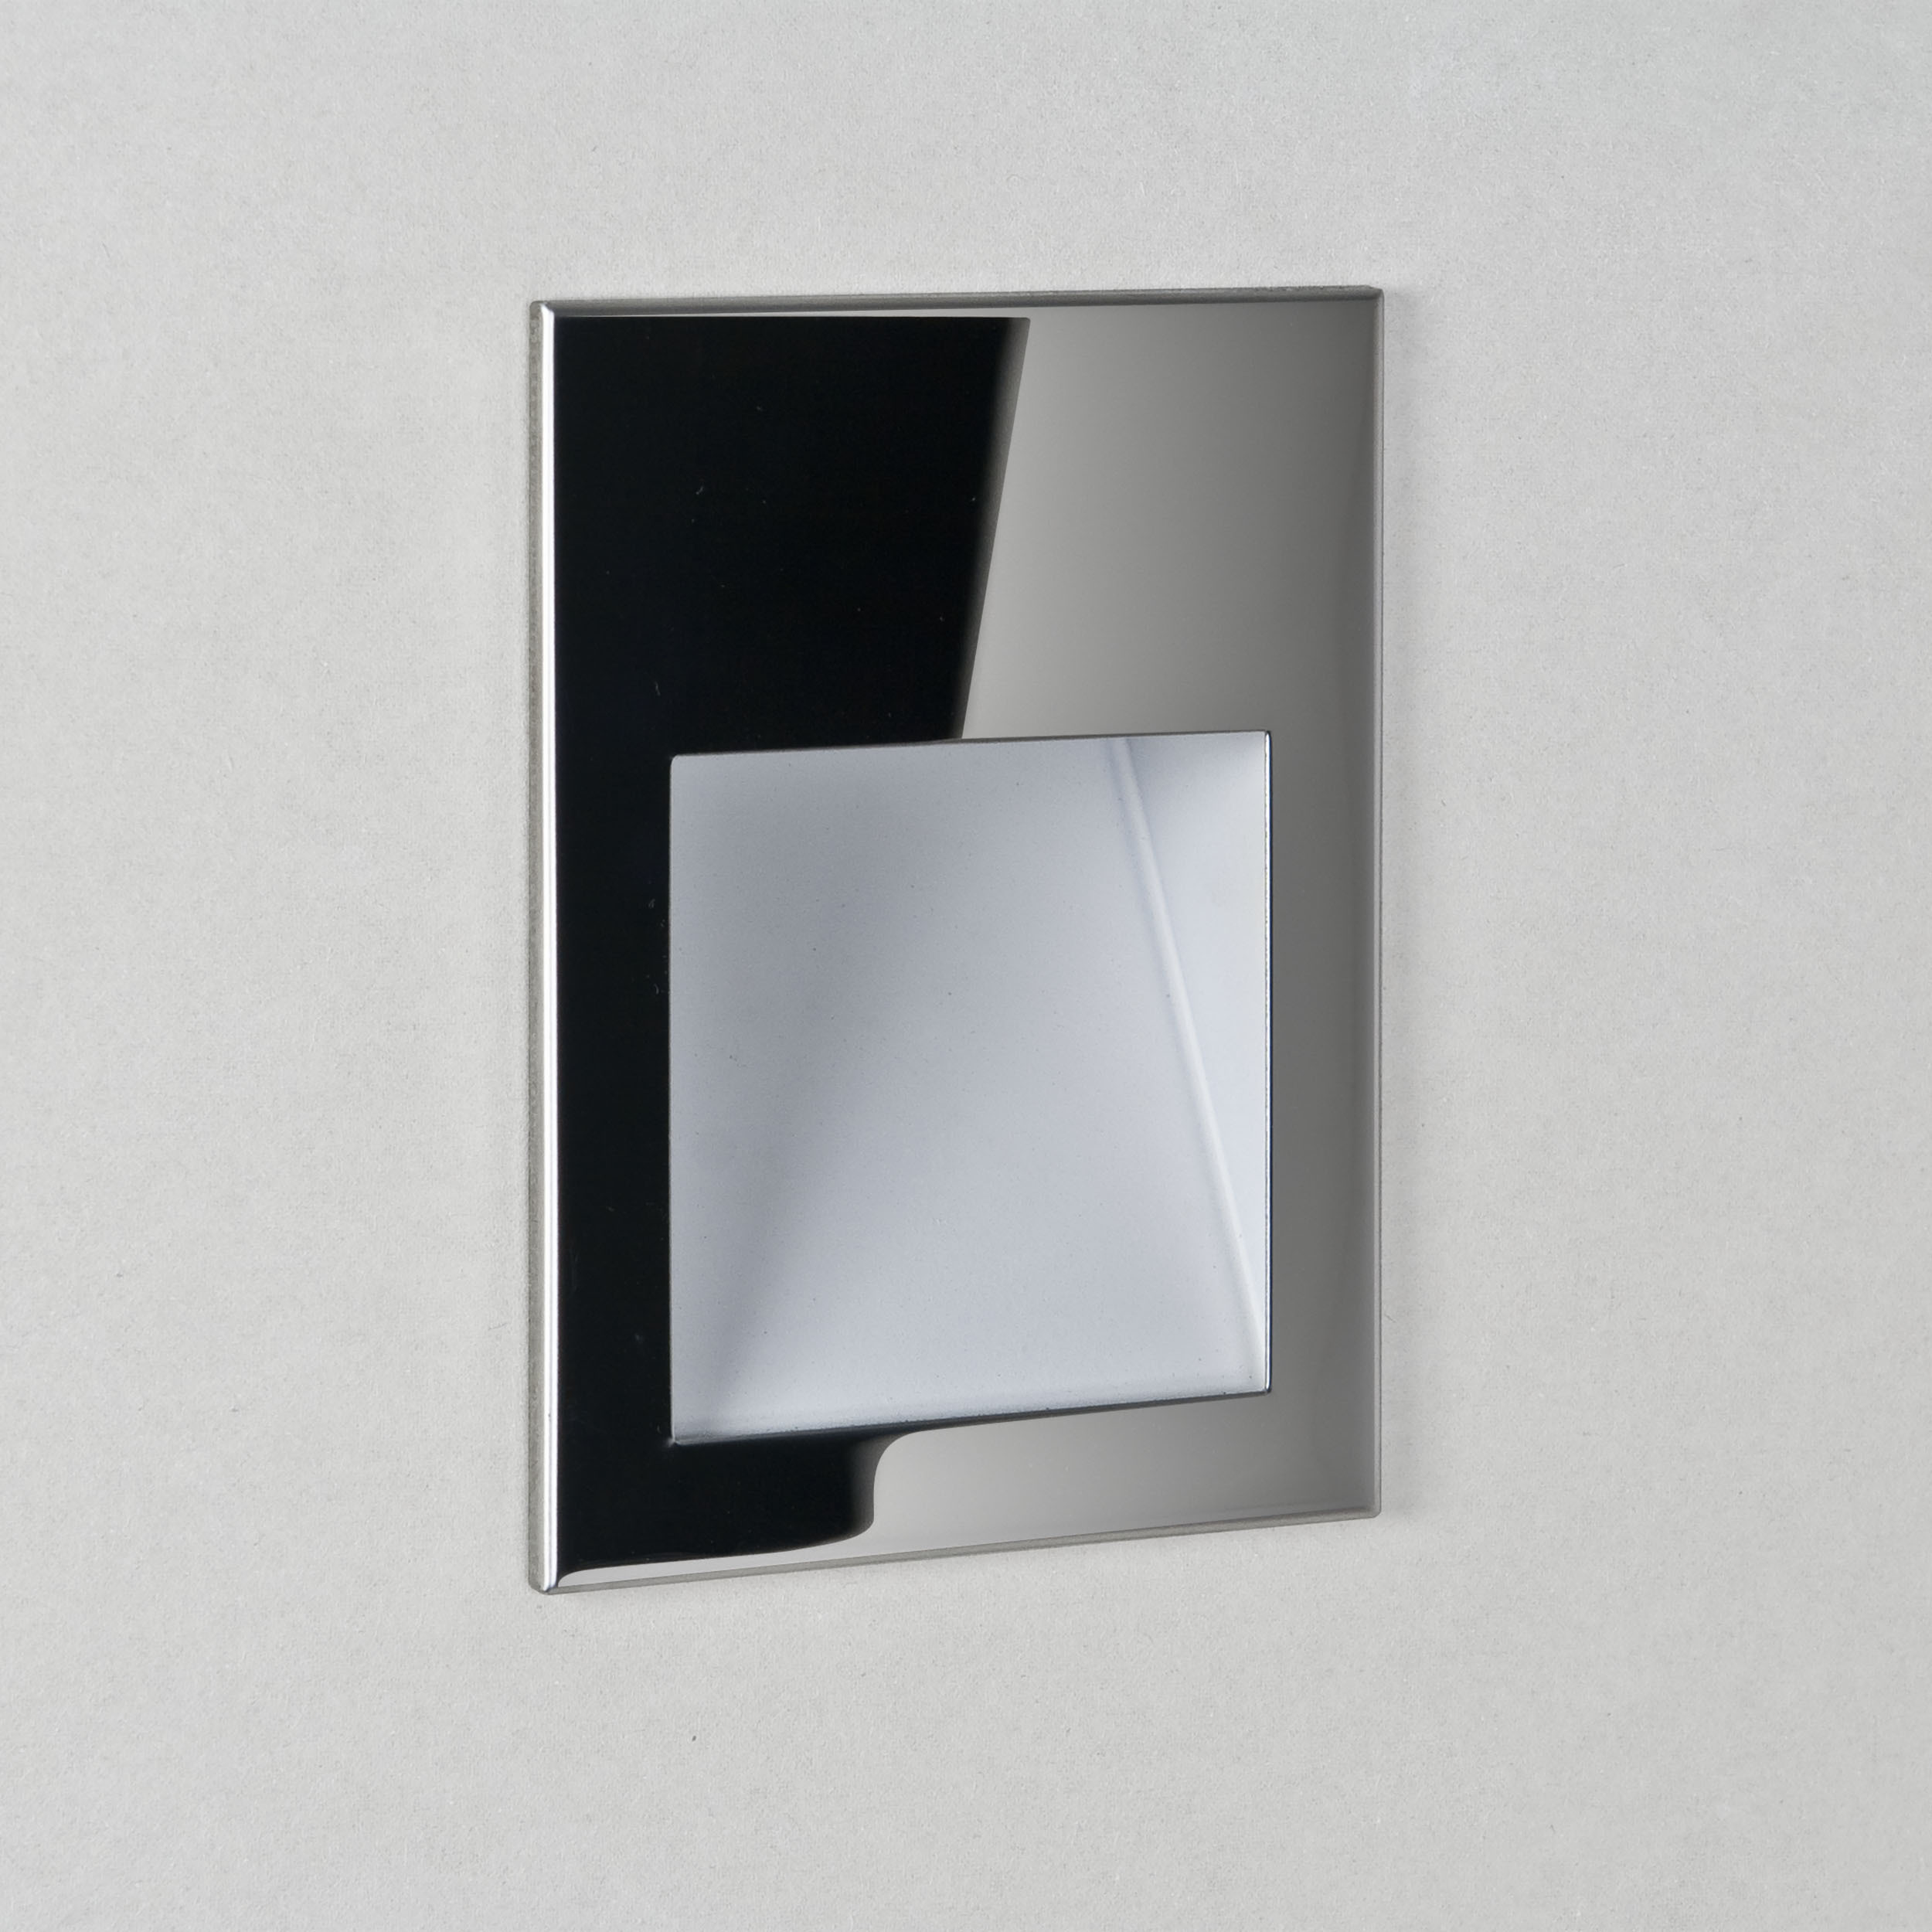 Astro Borgo 54 2700k Marker Wall Light Stainless Steel IP44 IP65 Dimmable